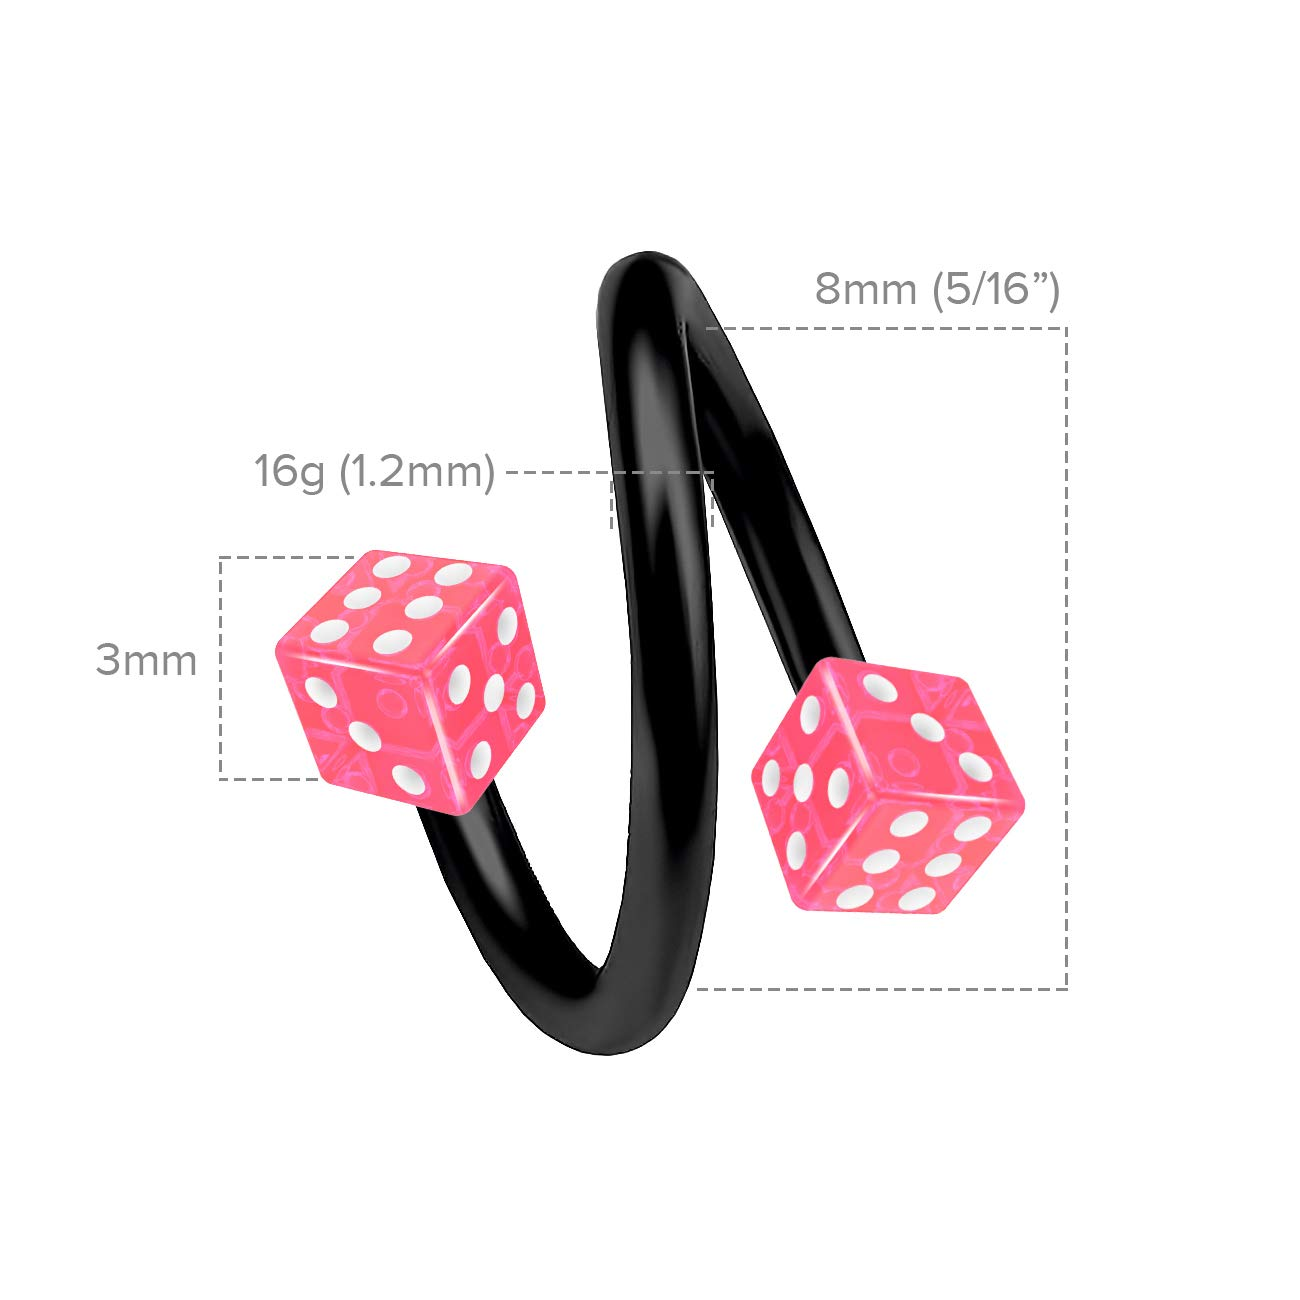 2pc Twisted Barbell 16g Dice Piercing Earrings Helix Cartilage Twist 316LVM Surgical Steel Daith Spiral Belly Button Ring Navel Gauge Twister Black Body Jewelry 10mm Pink 3mm Anodized Ball